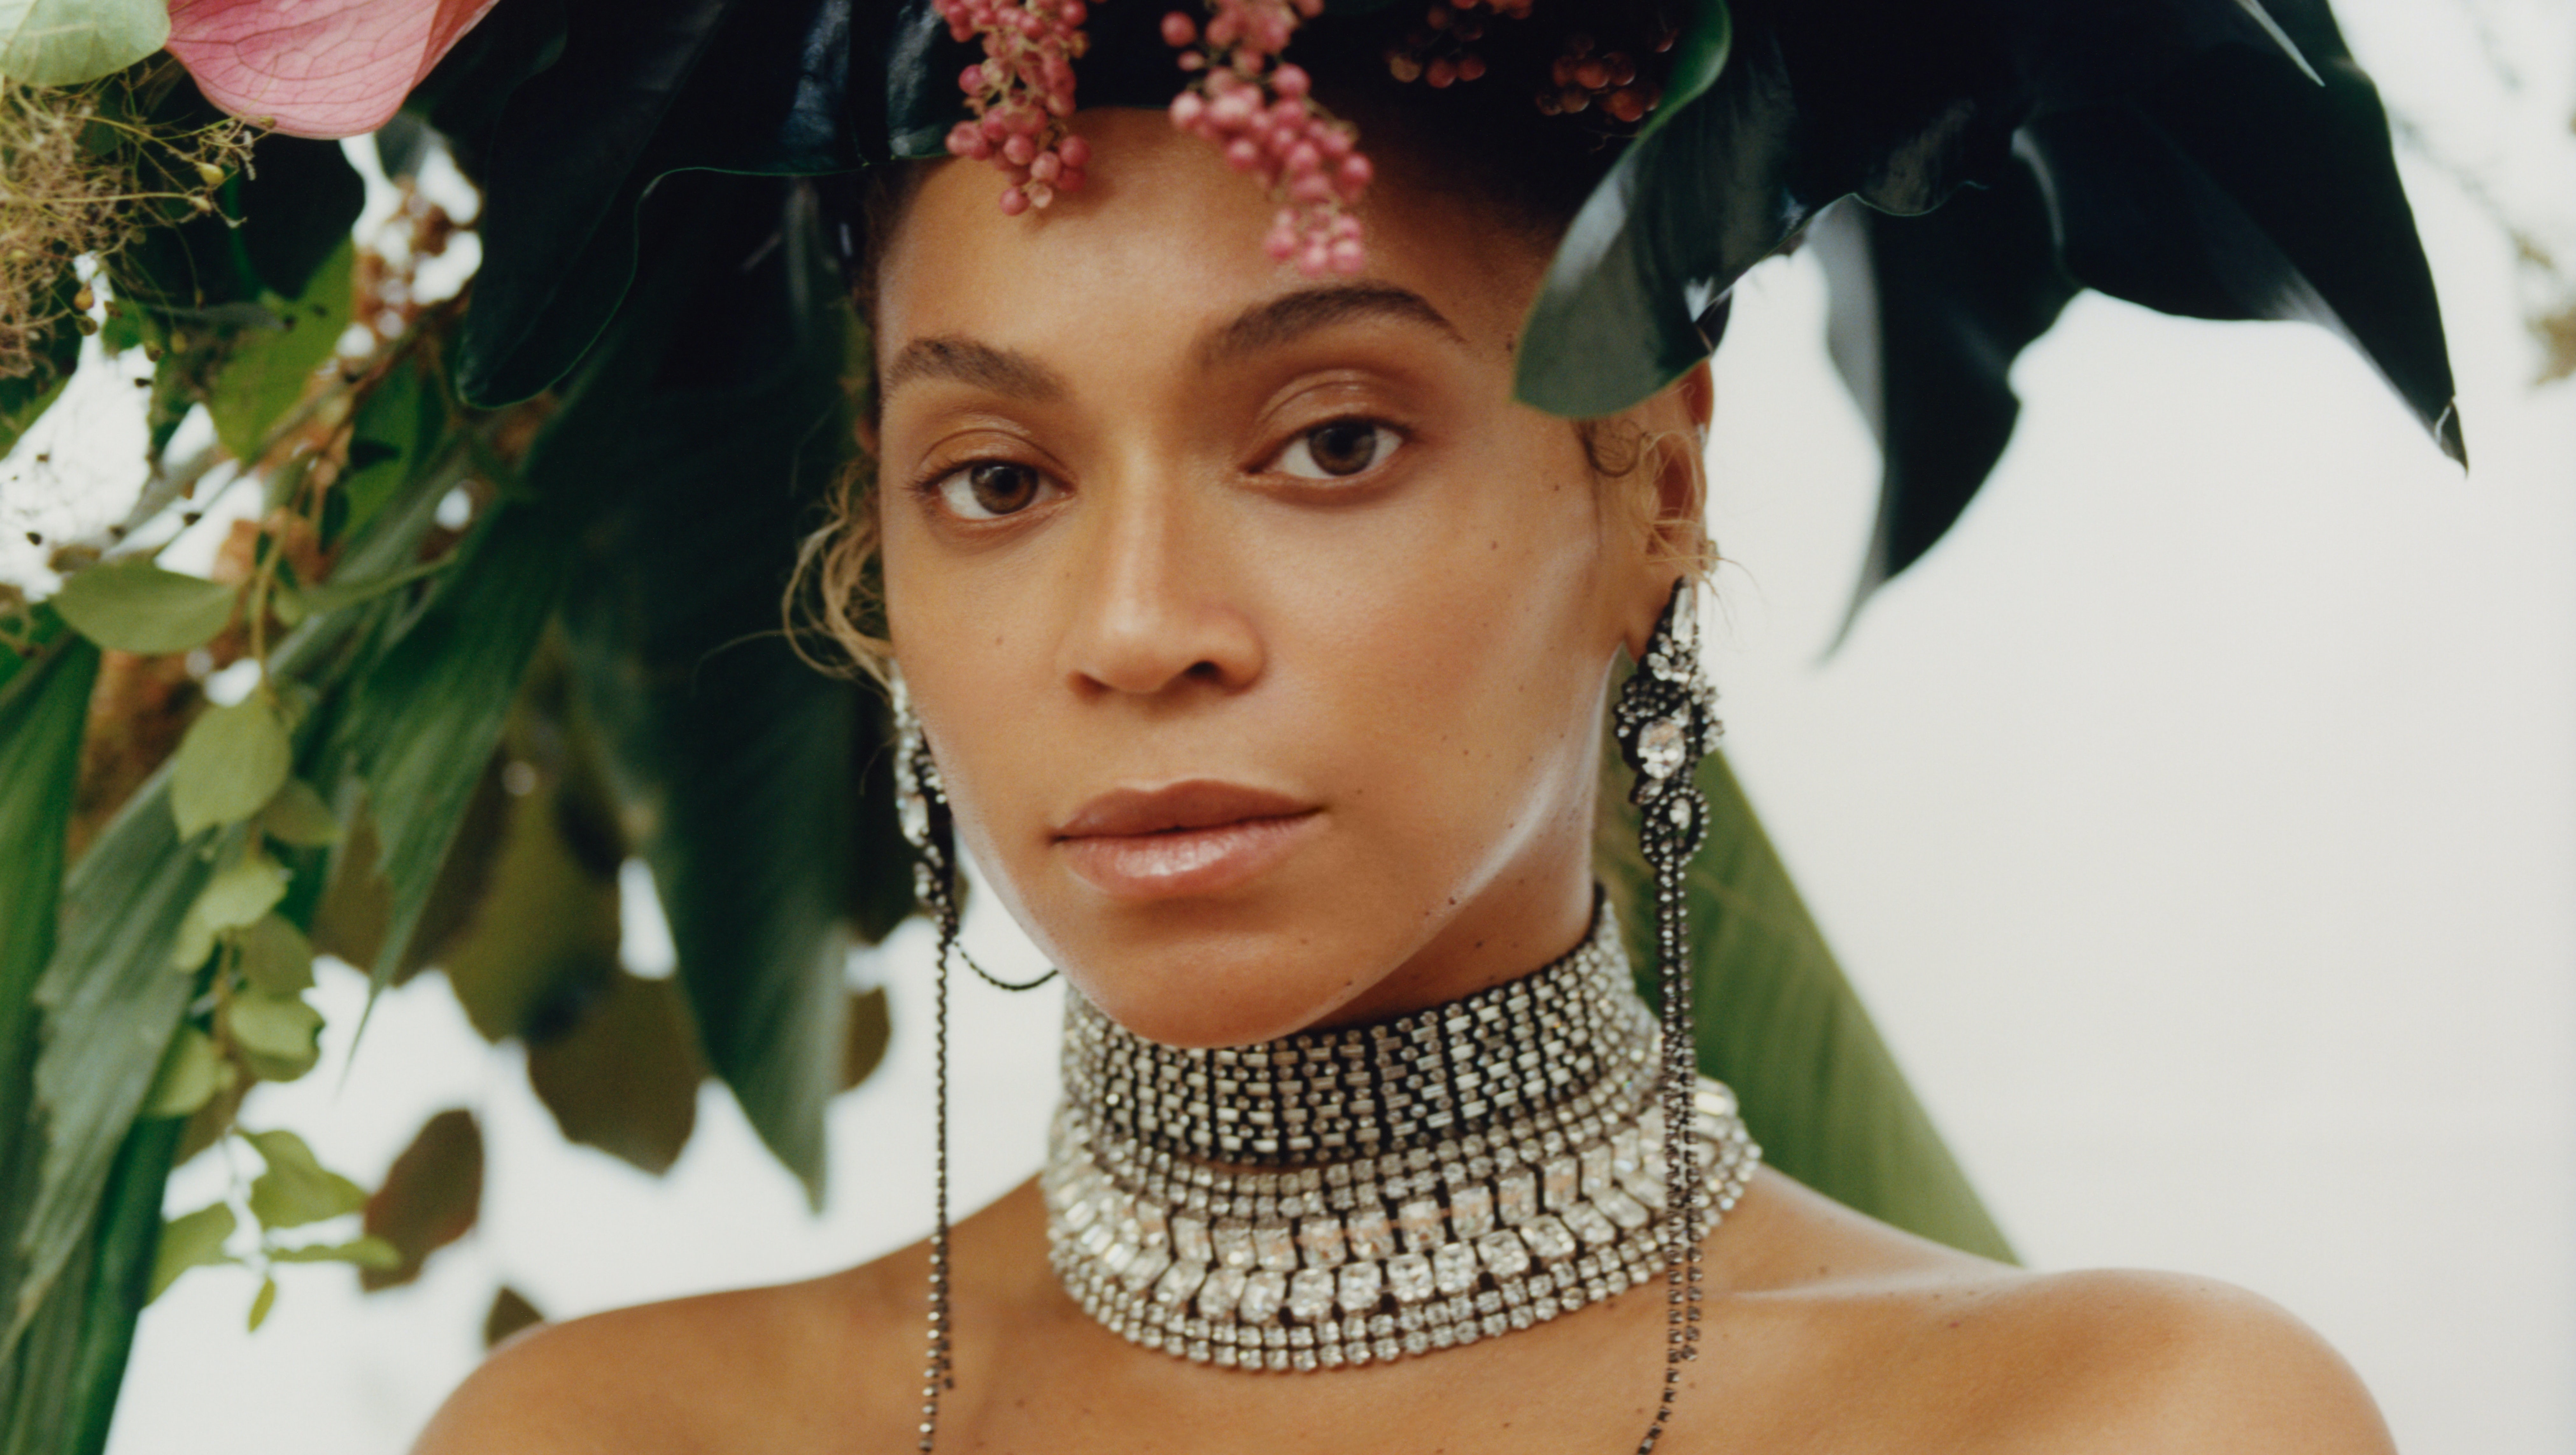 South African Department Store Woolworths Partners With Beyoncé Makeup Artist